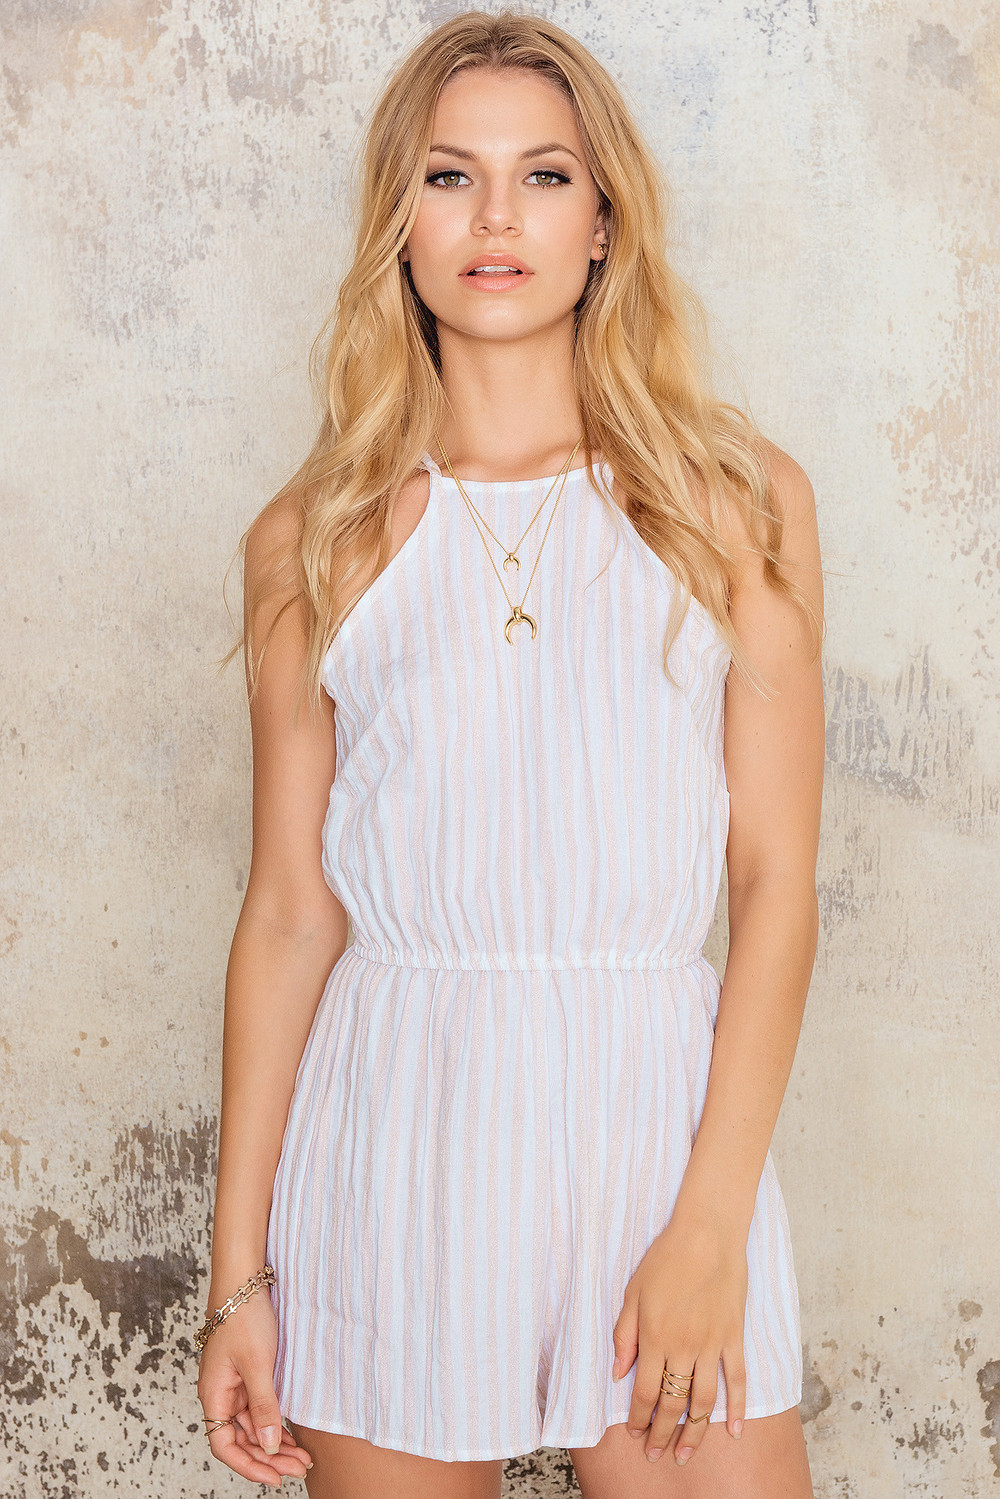 47368cb7ee Stella Sheer Billow Front Romper. Toby Heart Ginger Candy Shop Playsuit